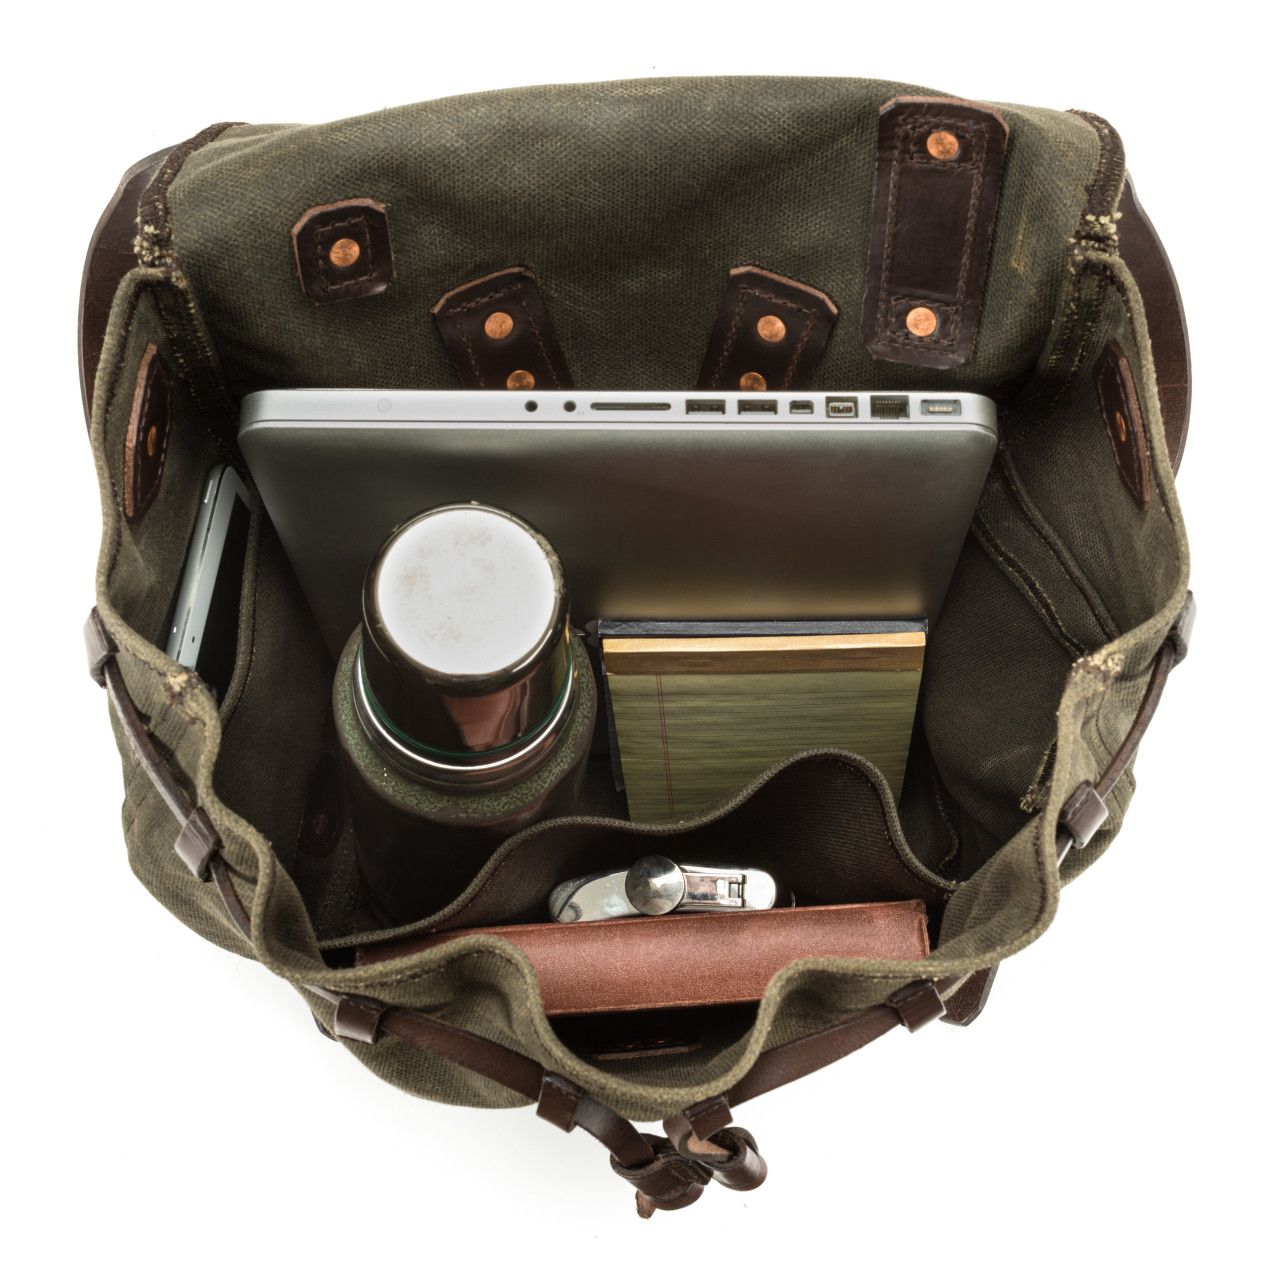 waxed canvas backpack small medium in moss green canvas with a macbook, notebook, thermos in the interior